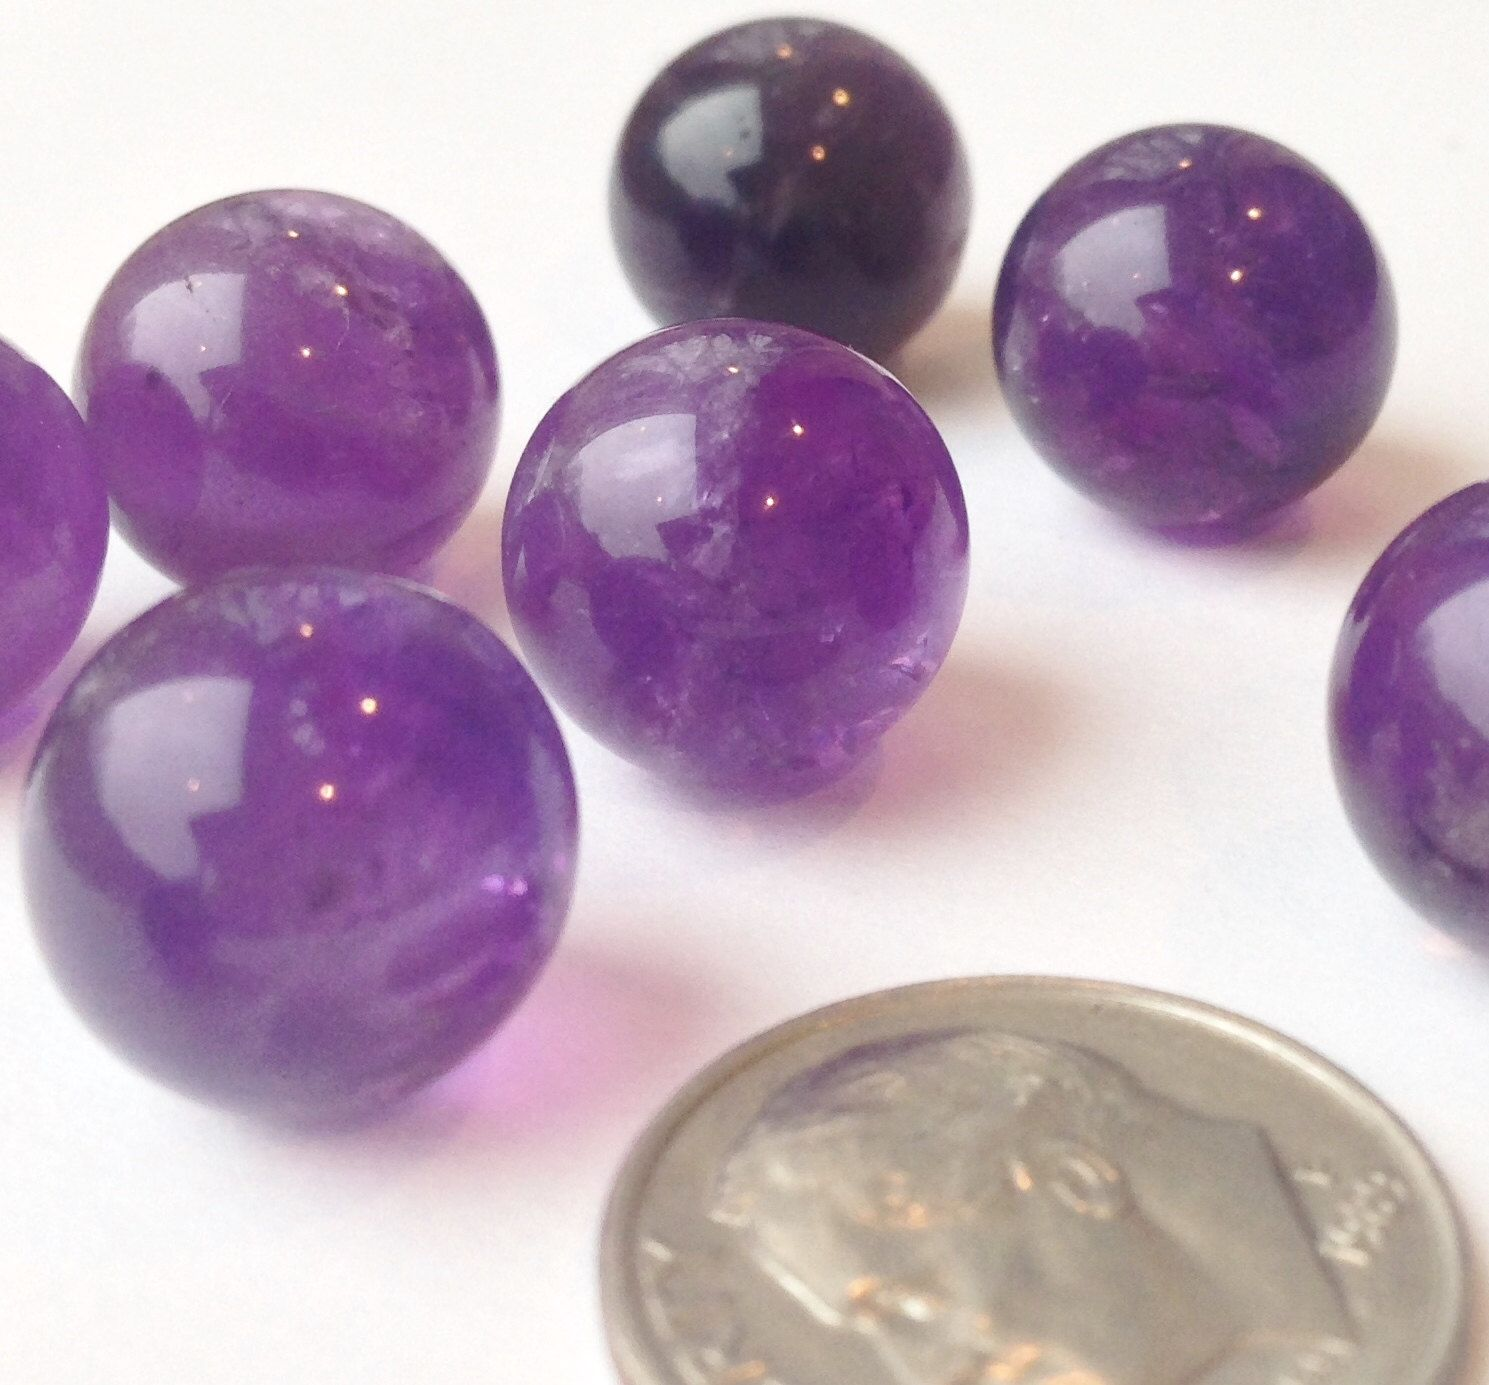 3 Pieces 12mm Amethyst Crystal Balls Round Spheres Ab Amethyst 1 2 Inch No Hole Cage Jewelry Undril Amethyst Crystal Chakra Beads Crystals And Gemstones